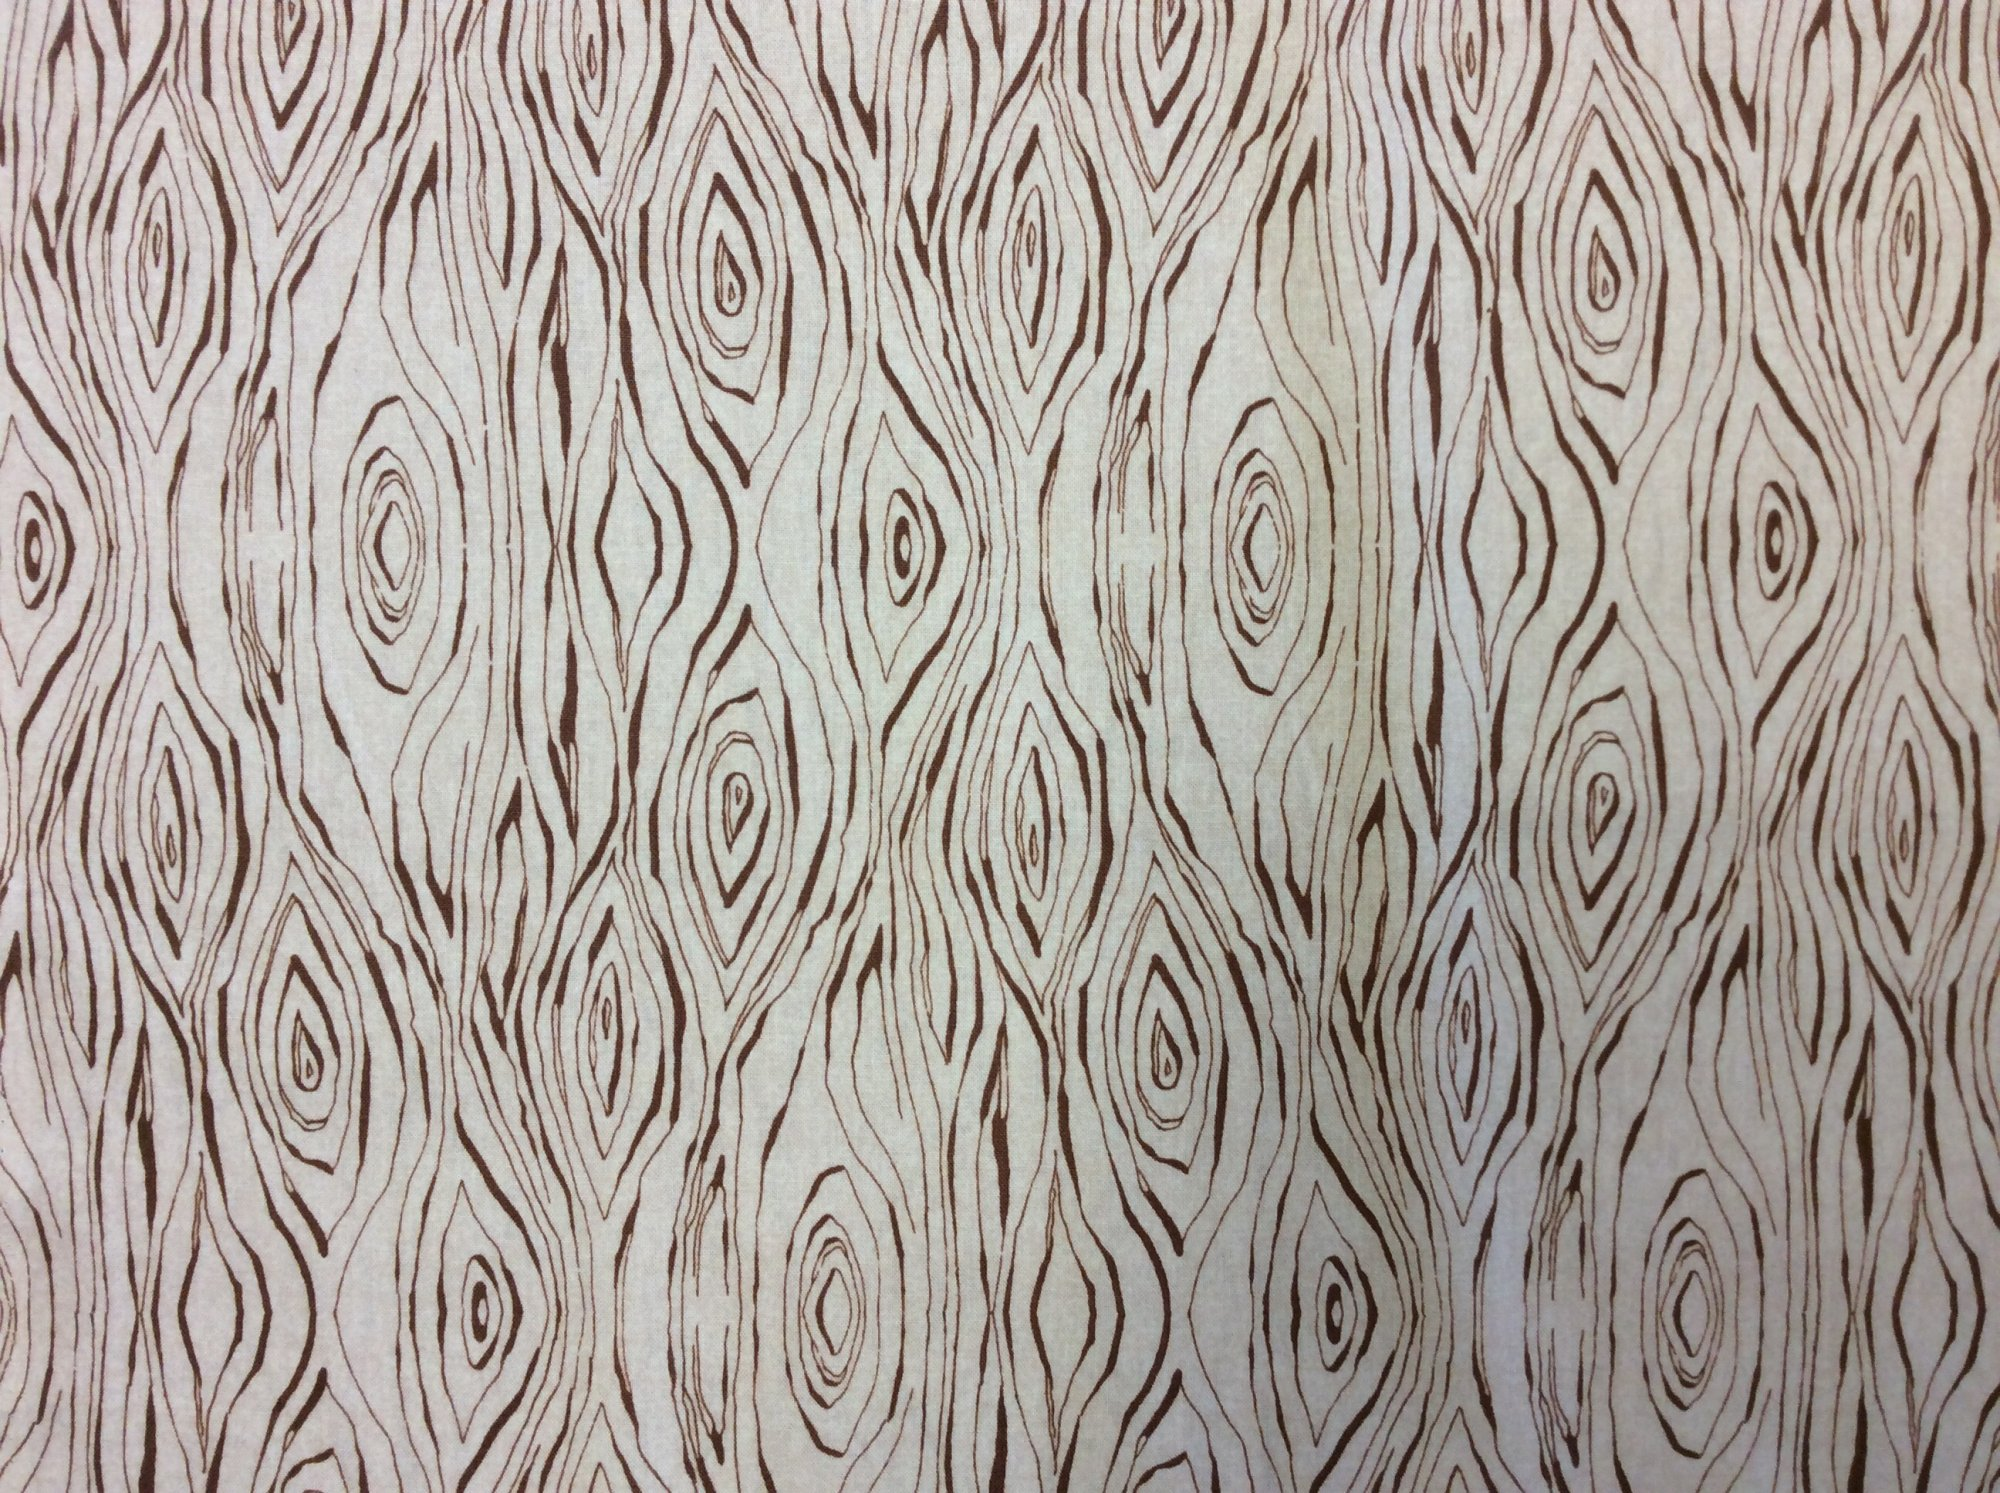 Wood Grain Faux Bois Tan Cotton Fabric Quilting Fabric MD339